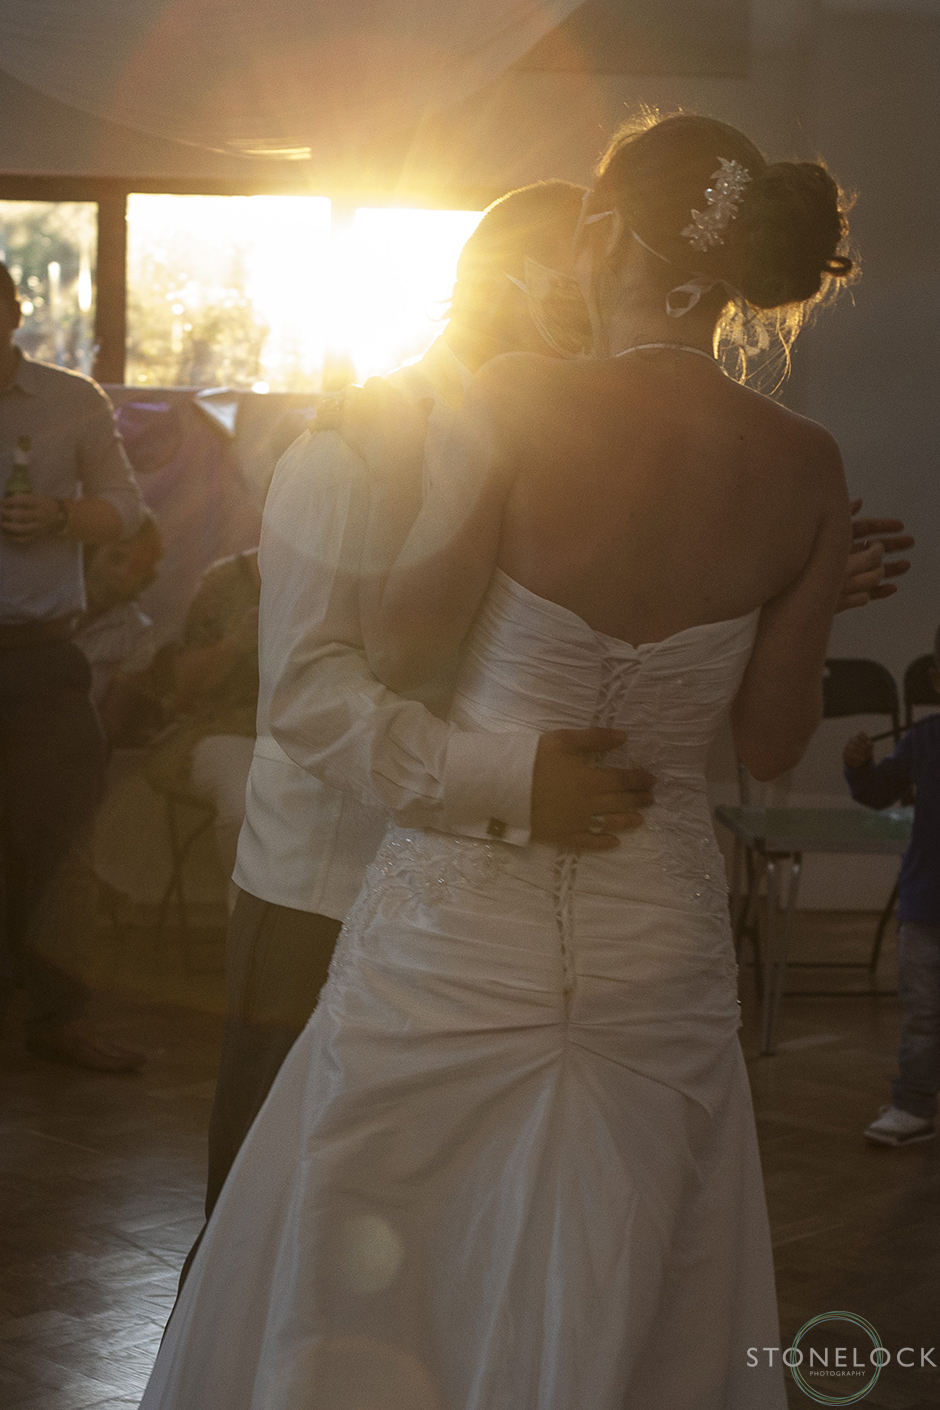 The first dance as the sun sets outside the window